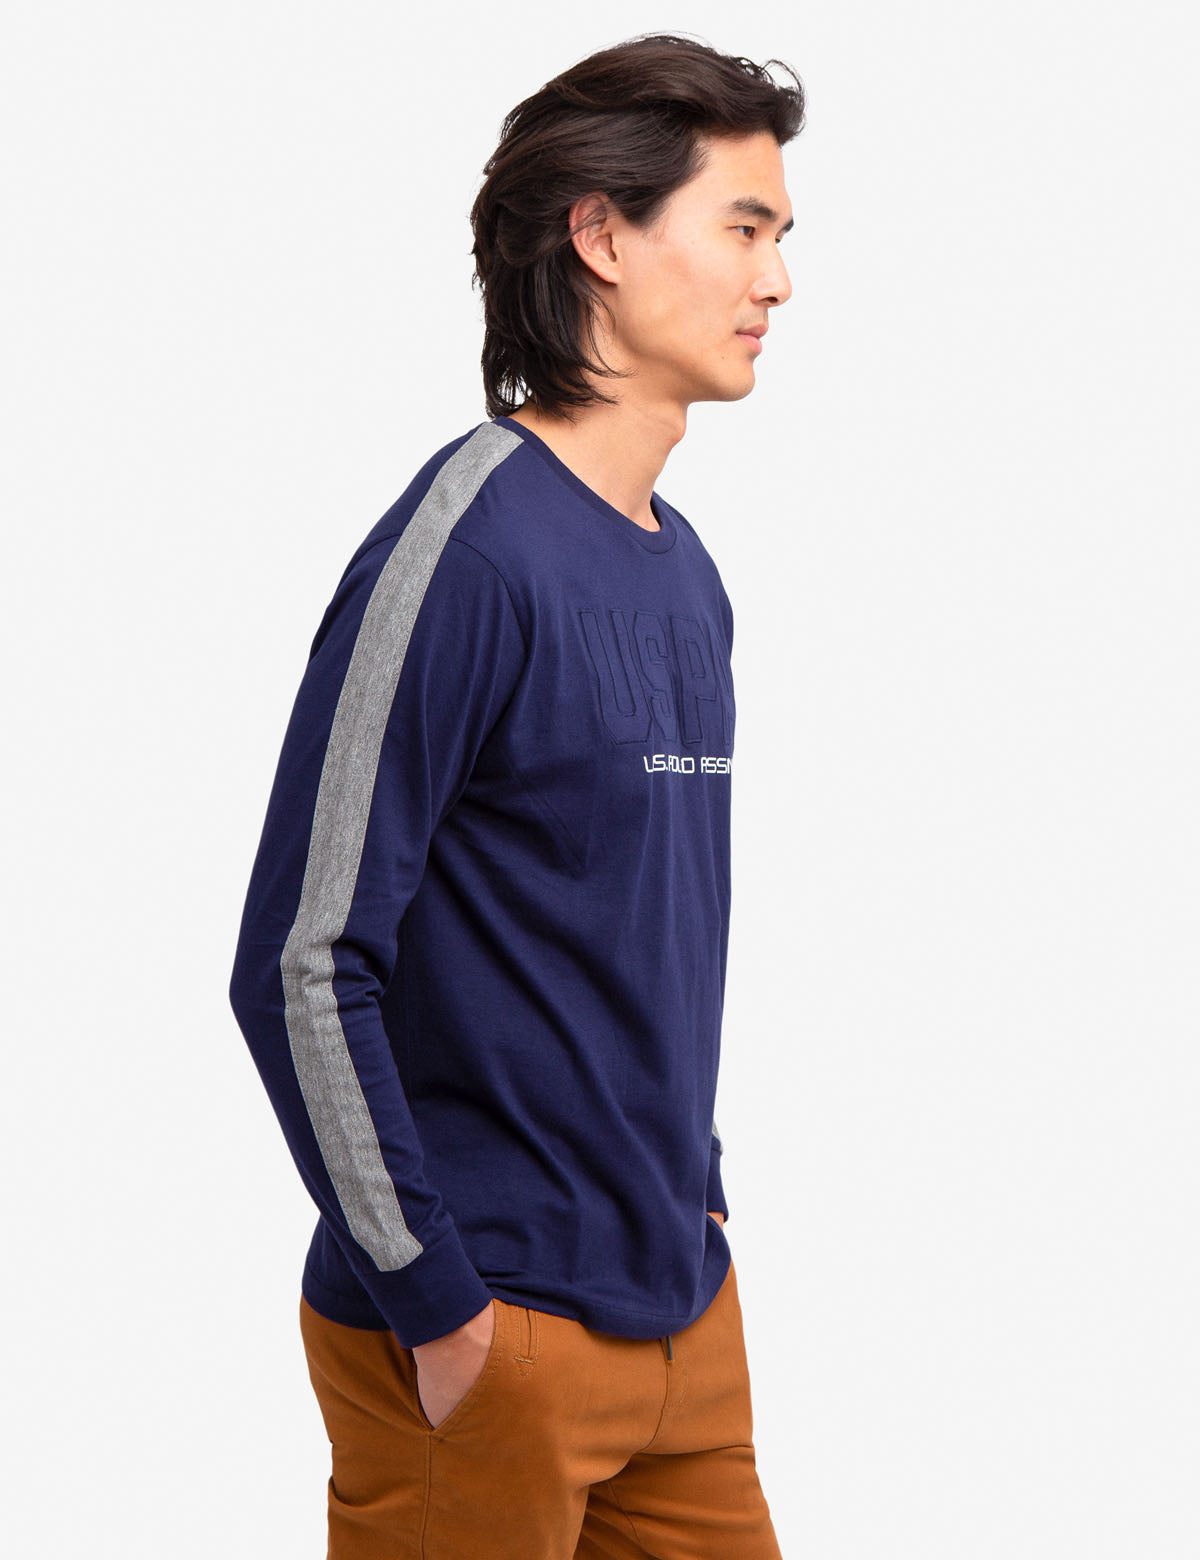 USPA PRINT LONG SLEEVE T-SHIRT - U.S. Polo Assn.